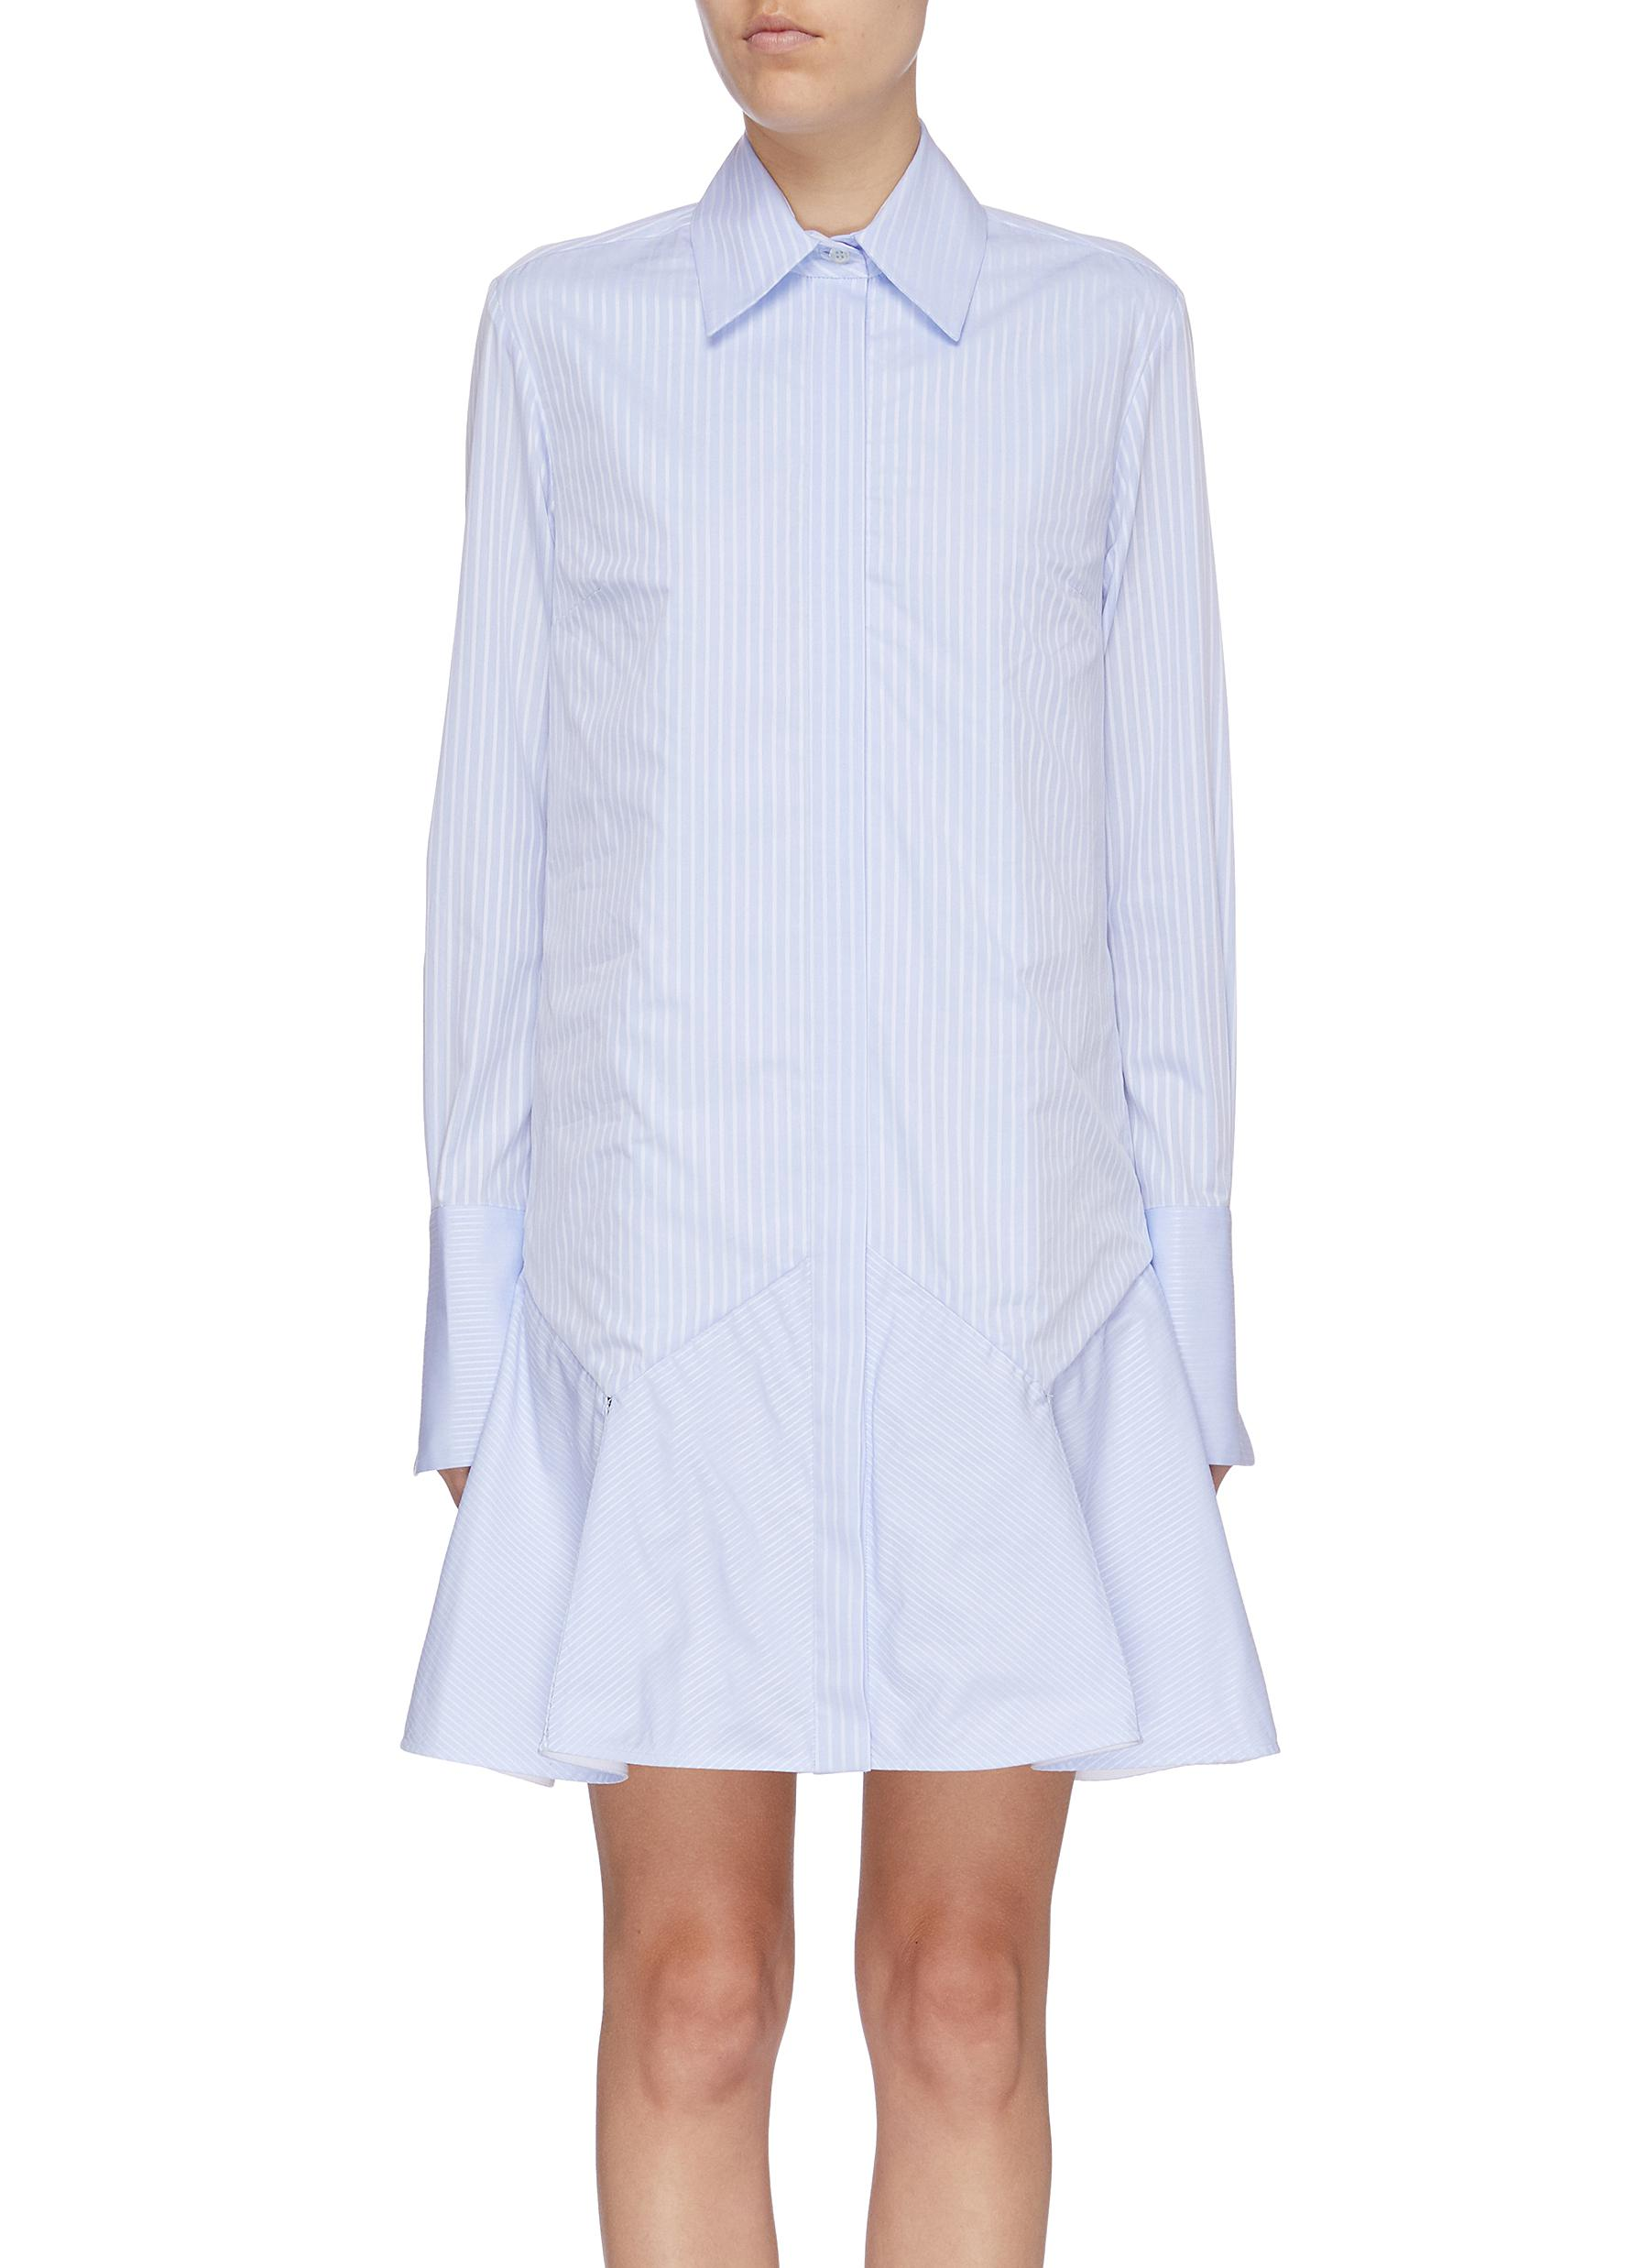 Stripe peplum shirt dress by Victoria, Victoria Beckham